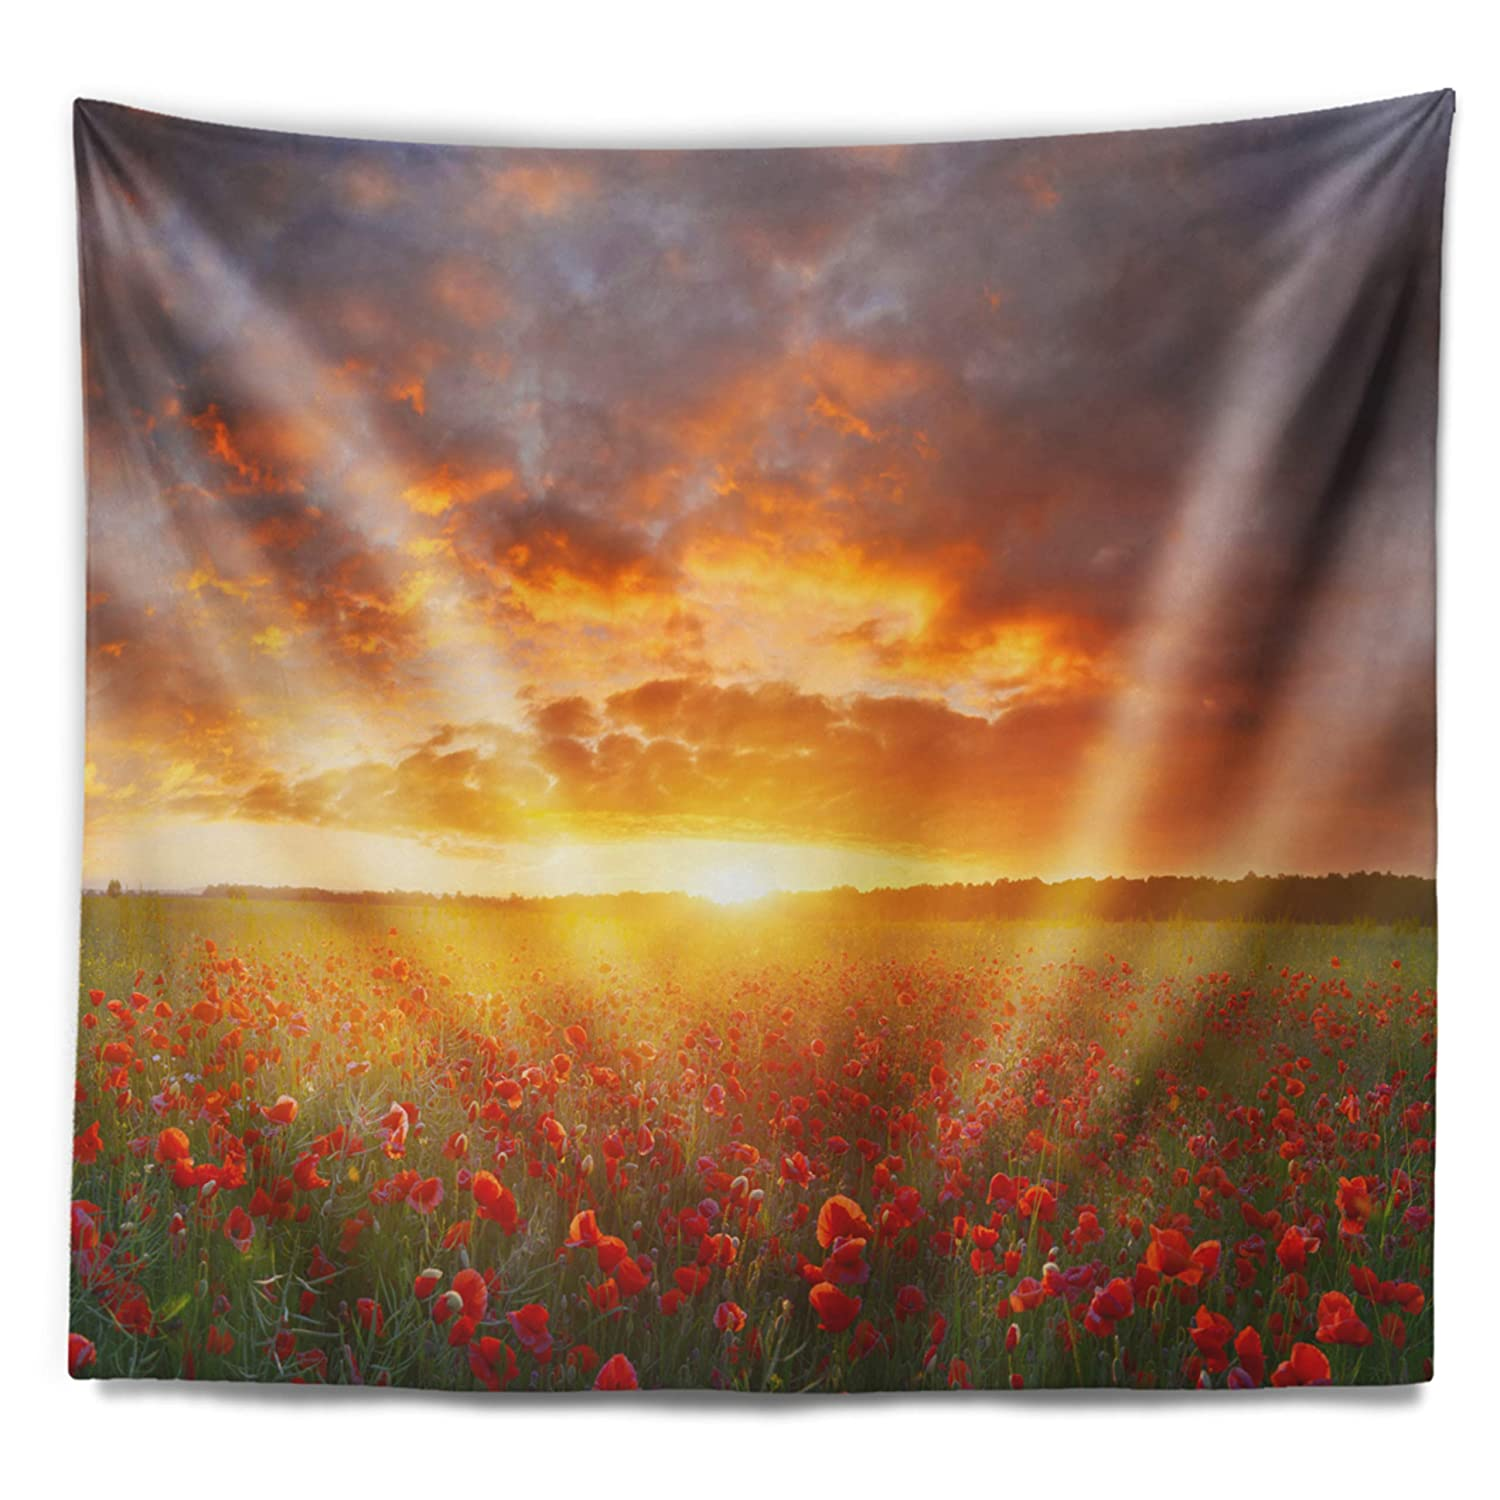 Created On Lightweight Polyester Fabric 60 in Designart TAP15140-60-50  Poppy Field Under Bright Sunset Landscape Blanket D/écor Art for Home and Office Wall Tapestry Large x 50 in